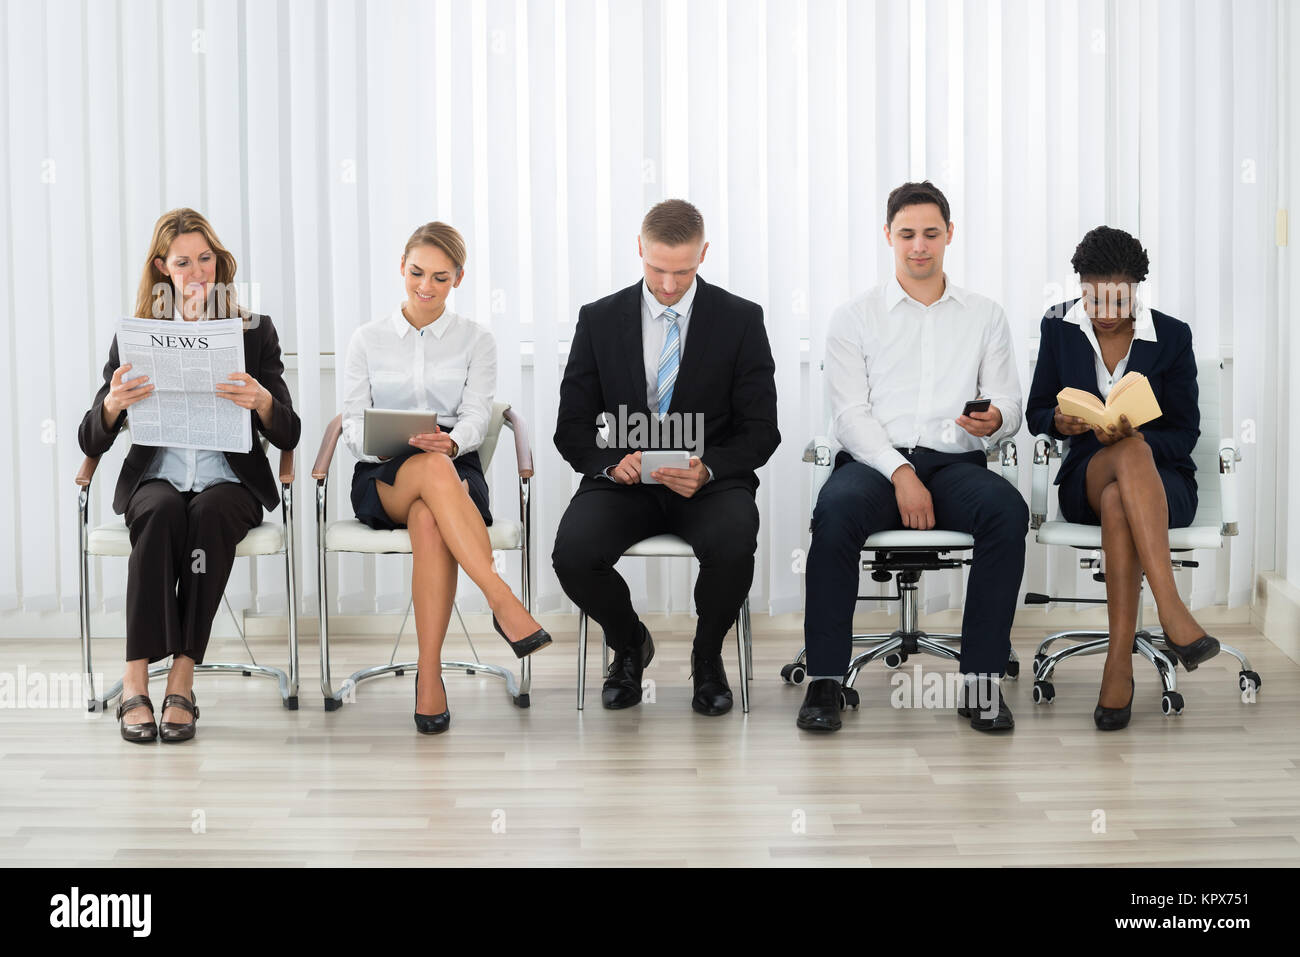 Businesspeople Waiting For Interview - Stock Image